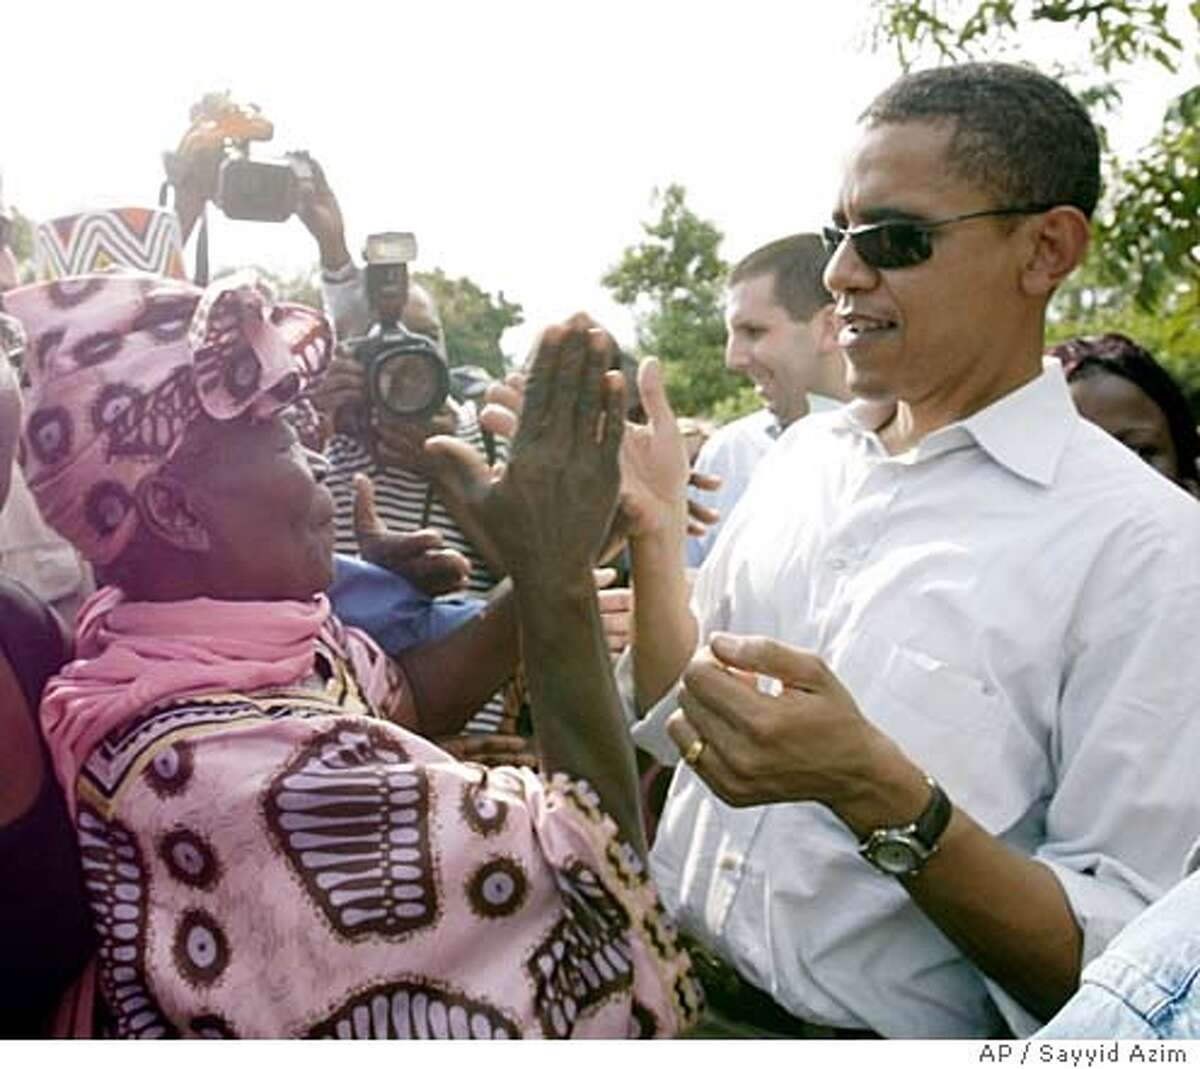 ** ATTN MARK- RETRANSMISSION OF ORIGINAL FILE** U.S. Senator Barack Obama, right, claps hands with his grandmother Sarah Hussein Obama at his father's house in Nyongoma Kogelo village, western Kenya, Saturday, Aug. 26, 2006. (AP Photo/Sayyid Azim)